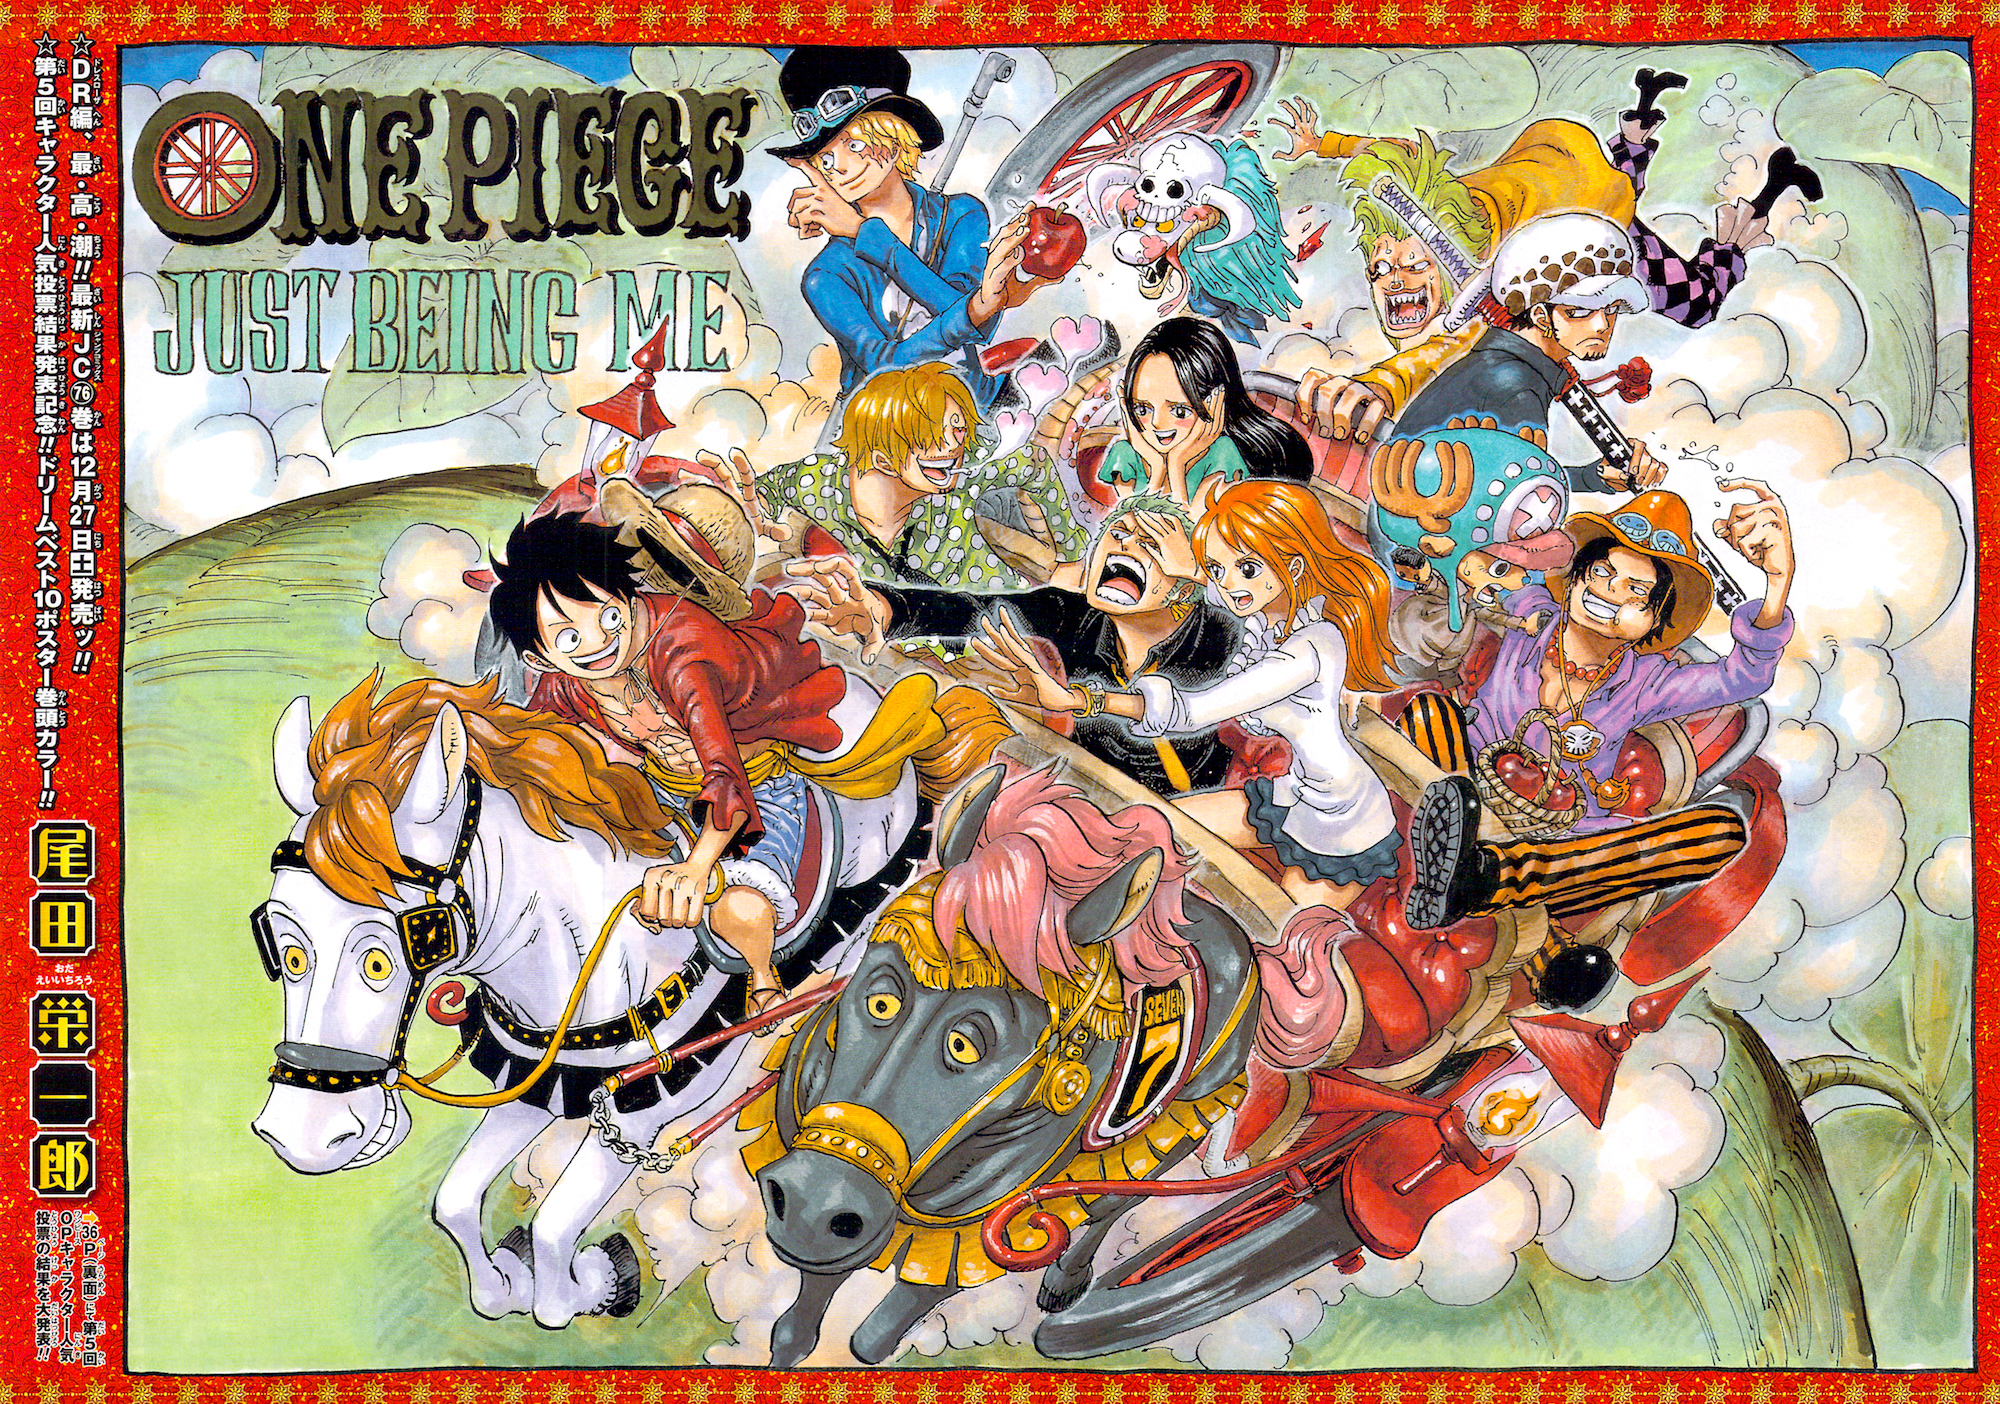 Cover Page One Piece Wiki Fandom In 2020 One Piece Manga One Piece Comic One Piece Chapter